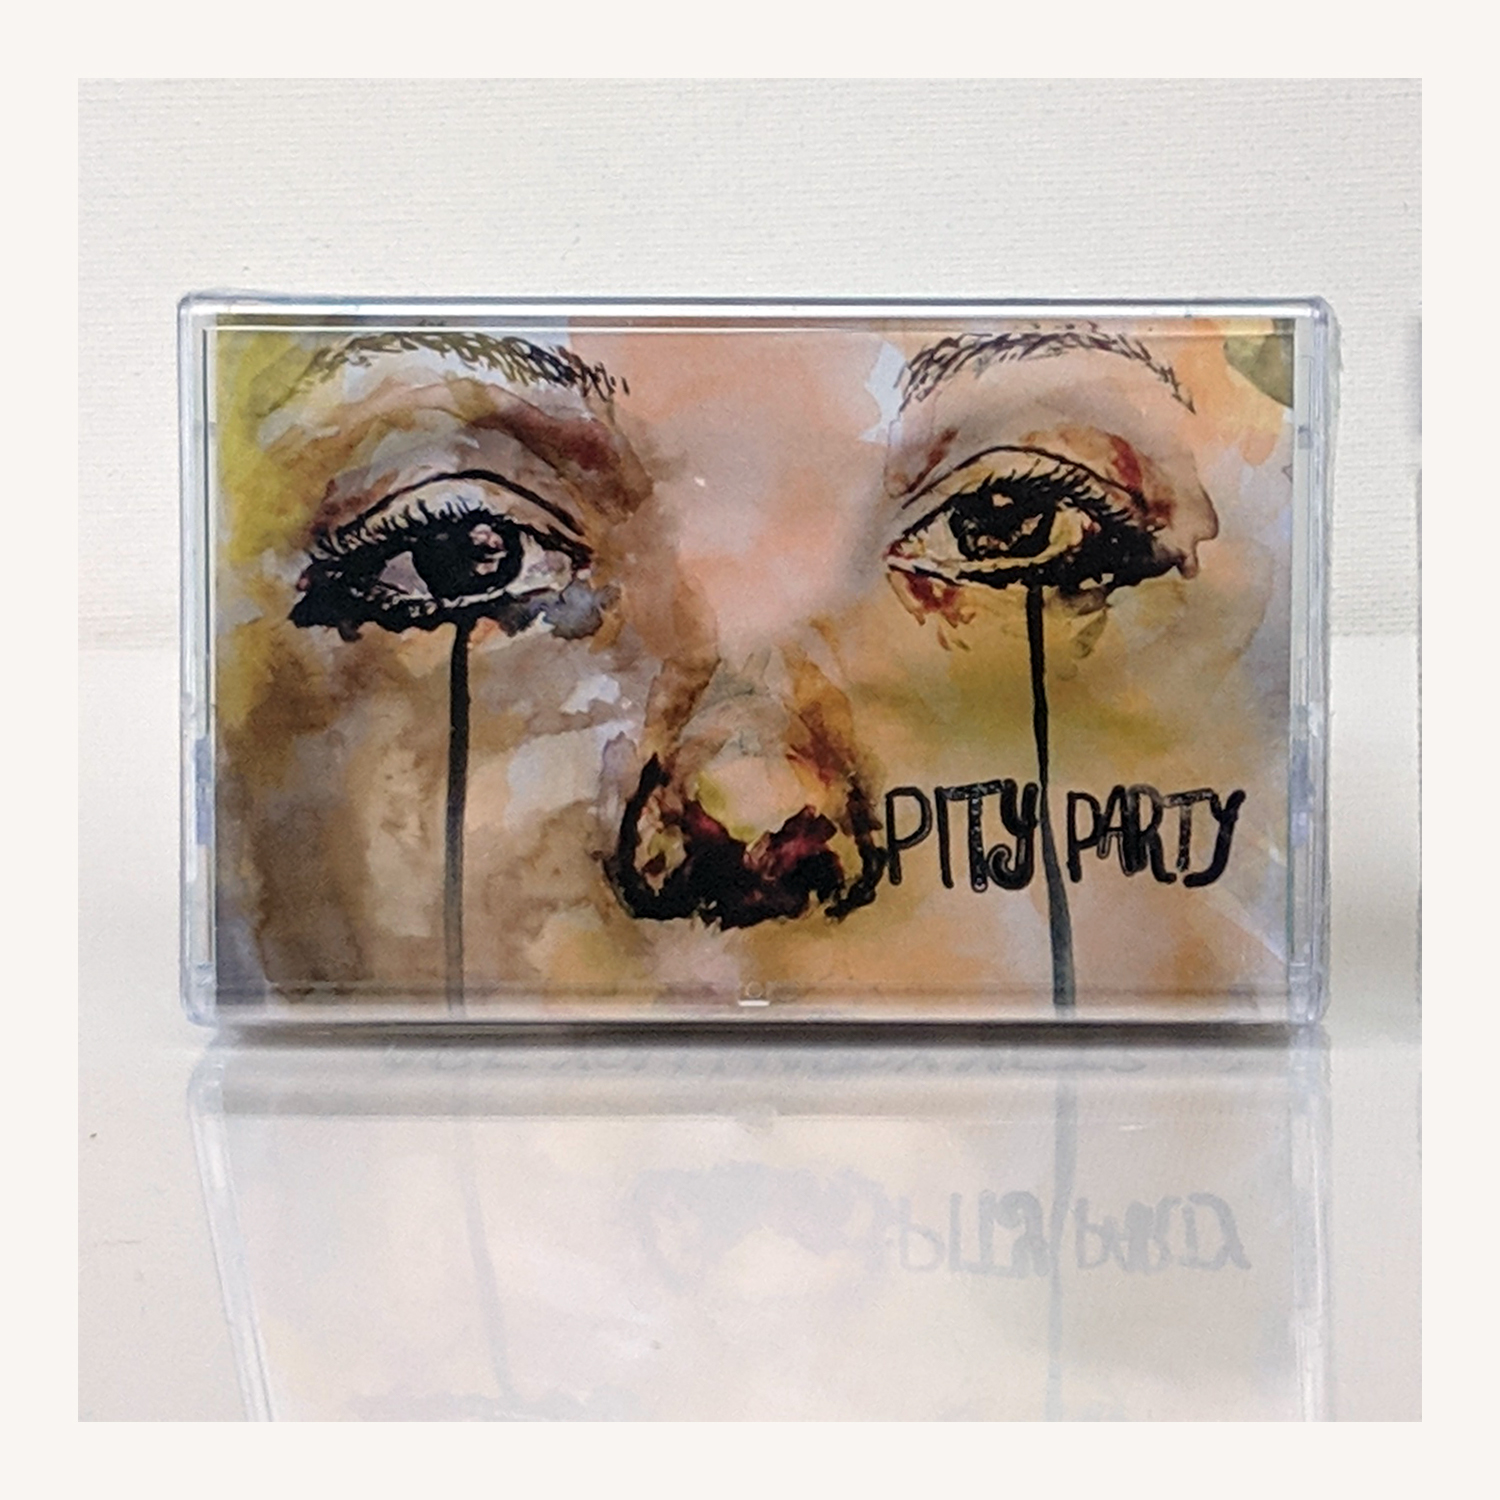 Pity Party - Are You Happy Yet?